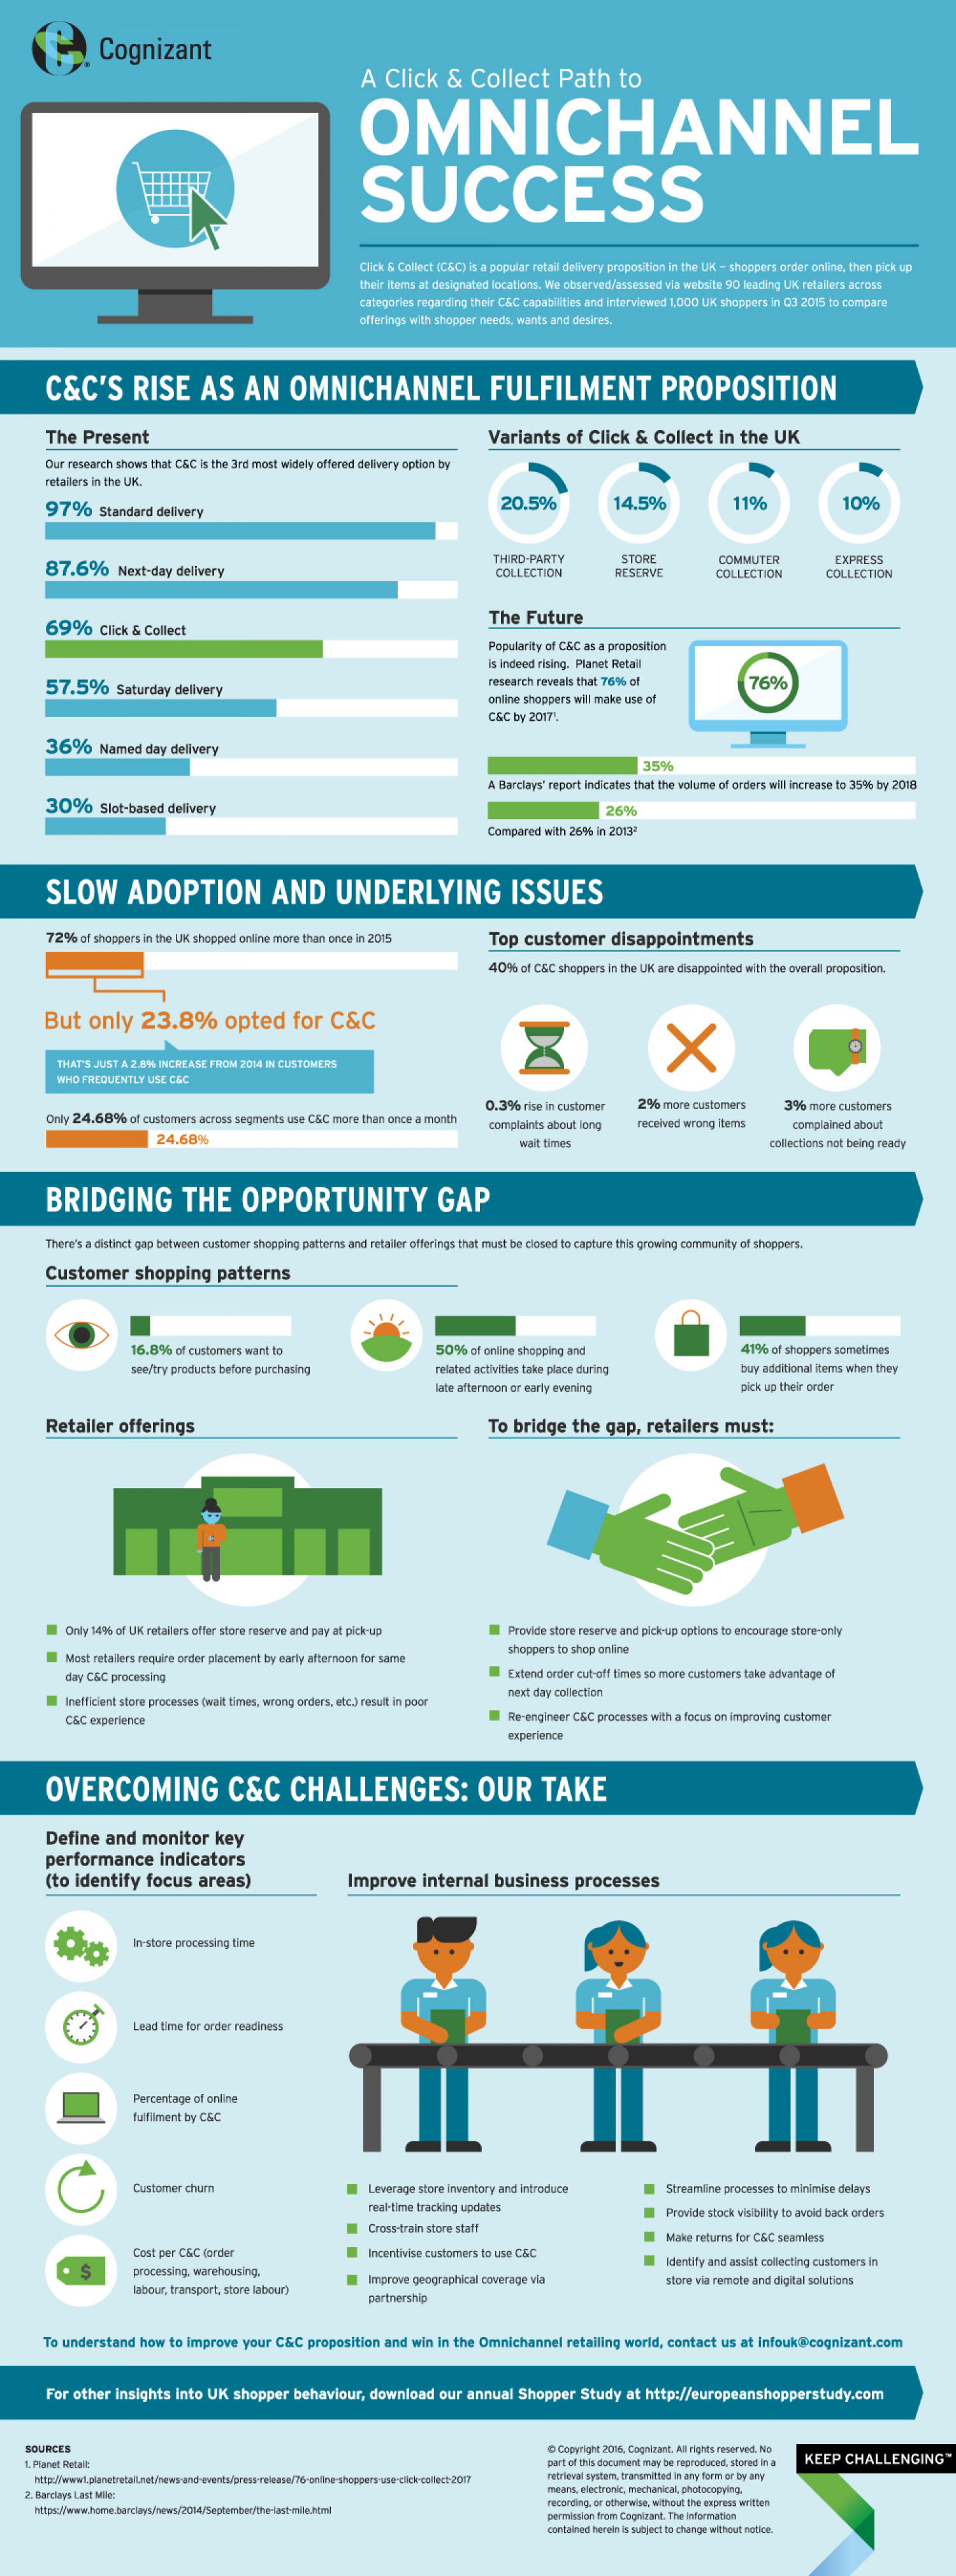 A Click & Collect Path to Omnichannel Success Infographic